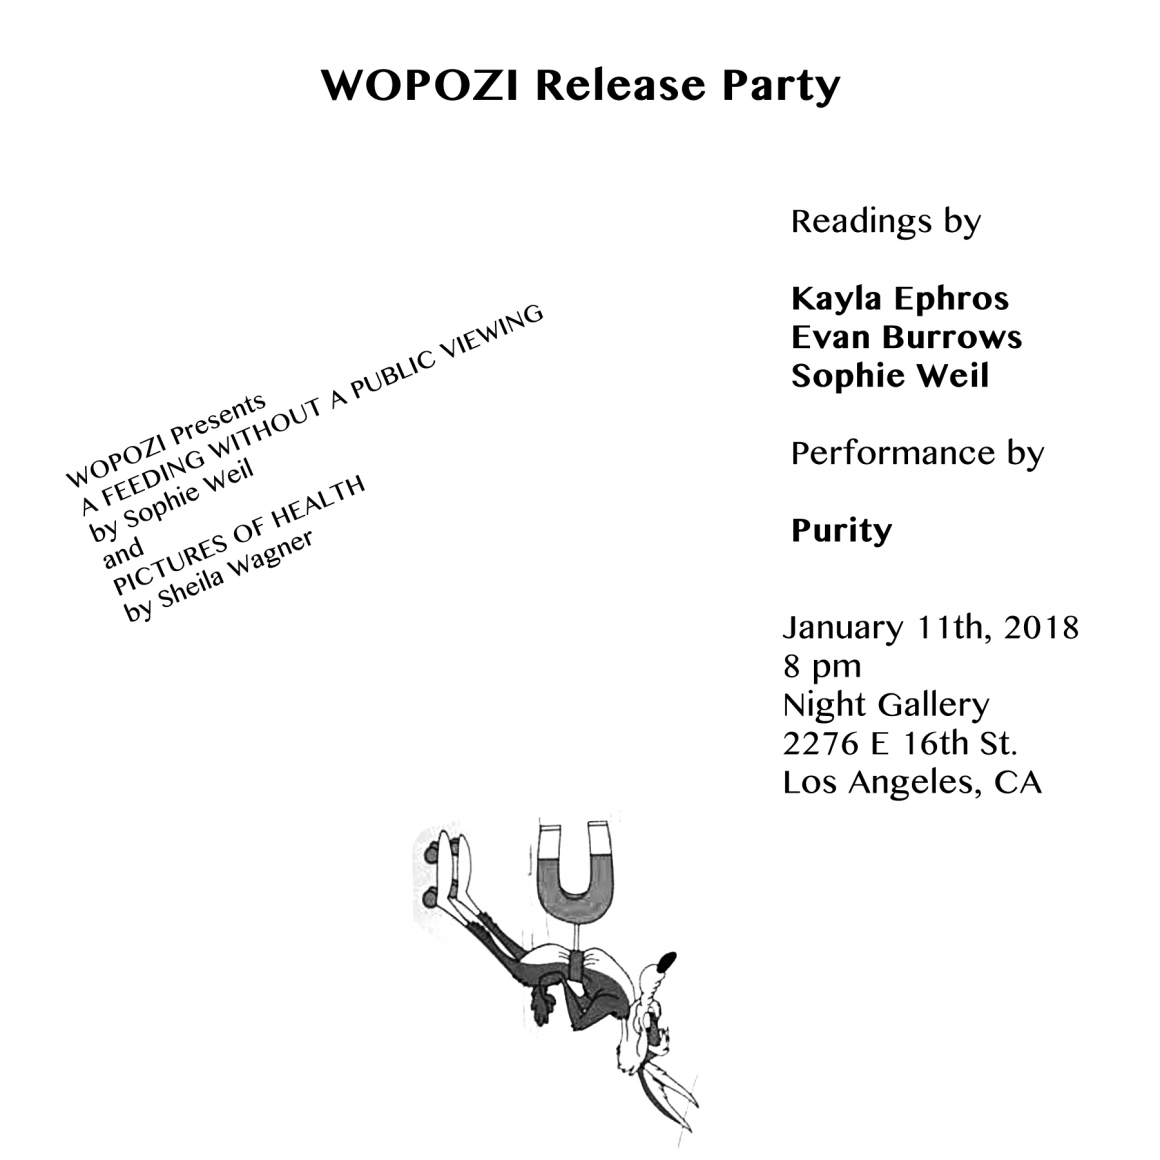 WOPOZI Release Party